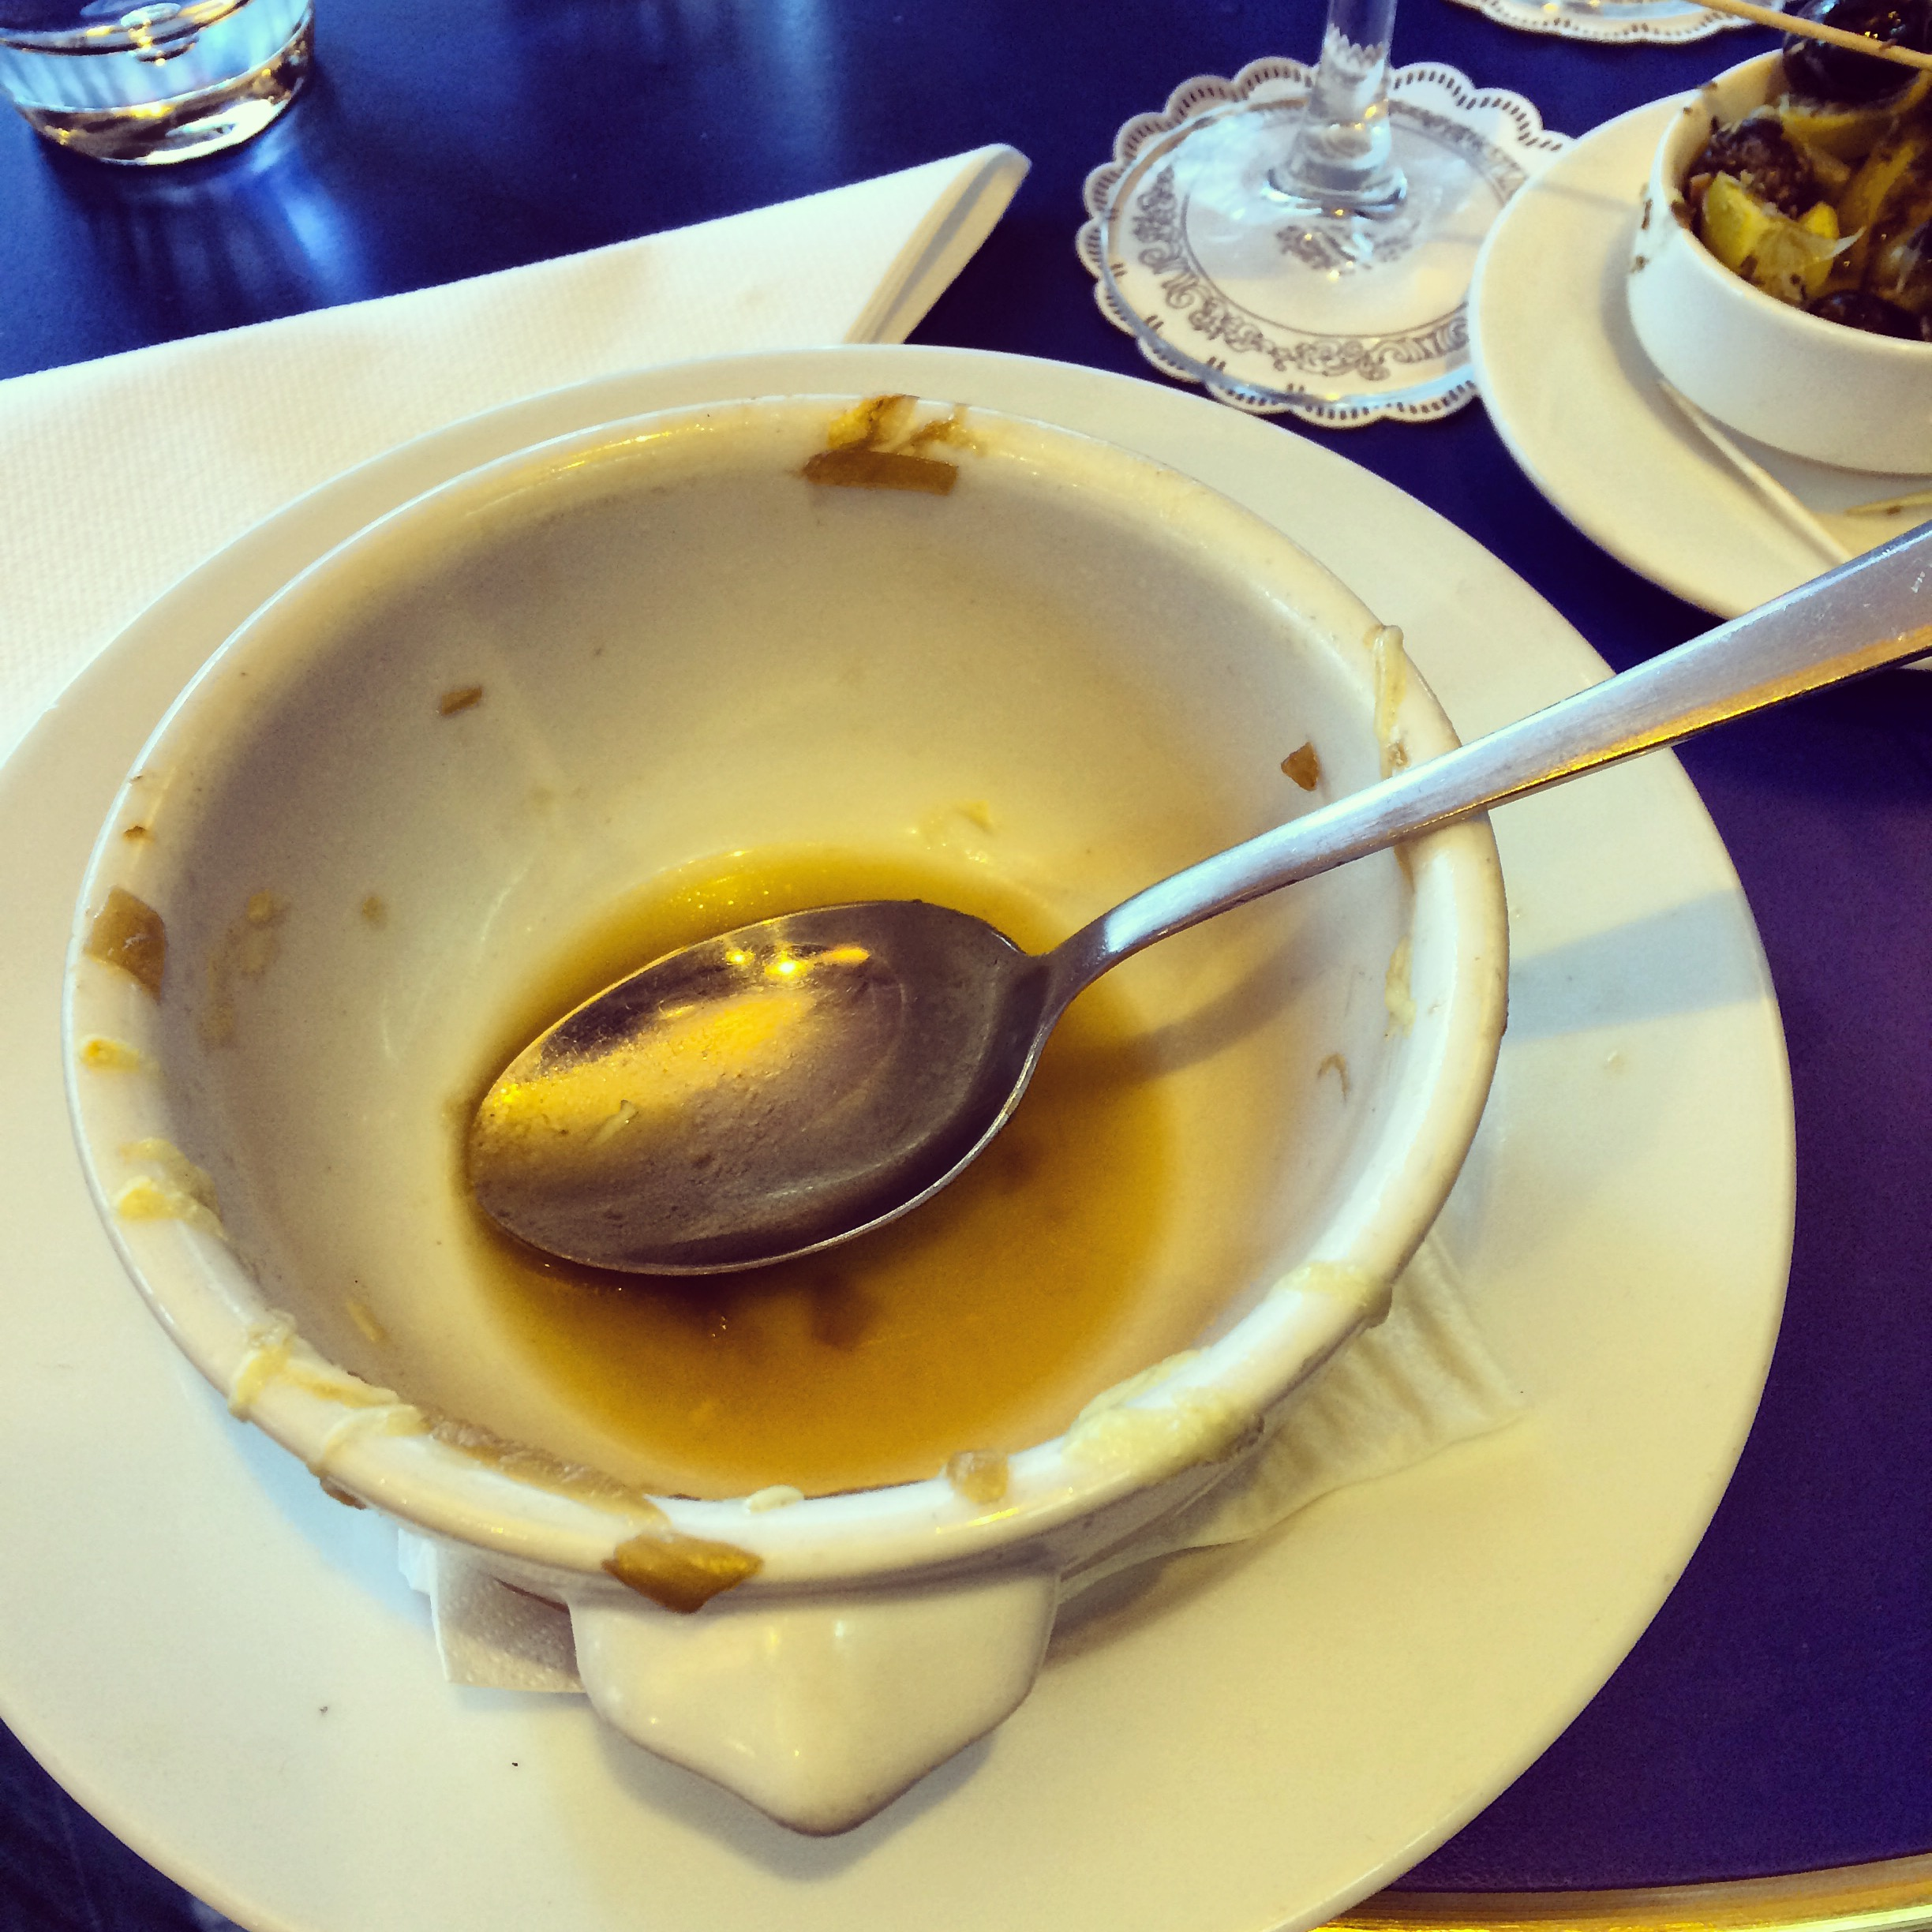 When I was in Paris I had onion soup and forgot to Instagram it until afterwards